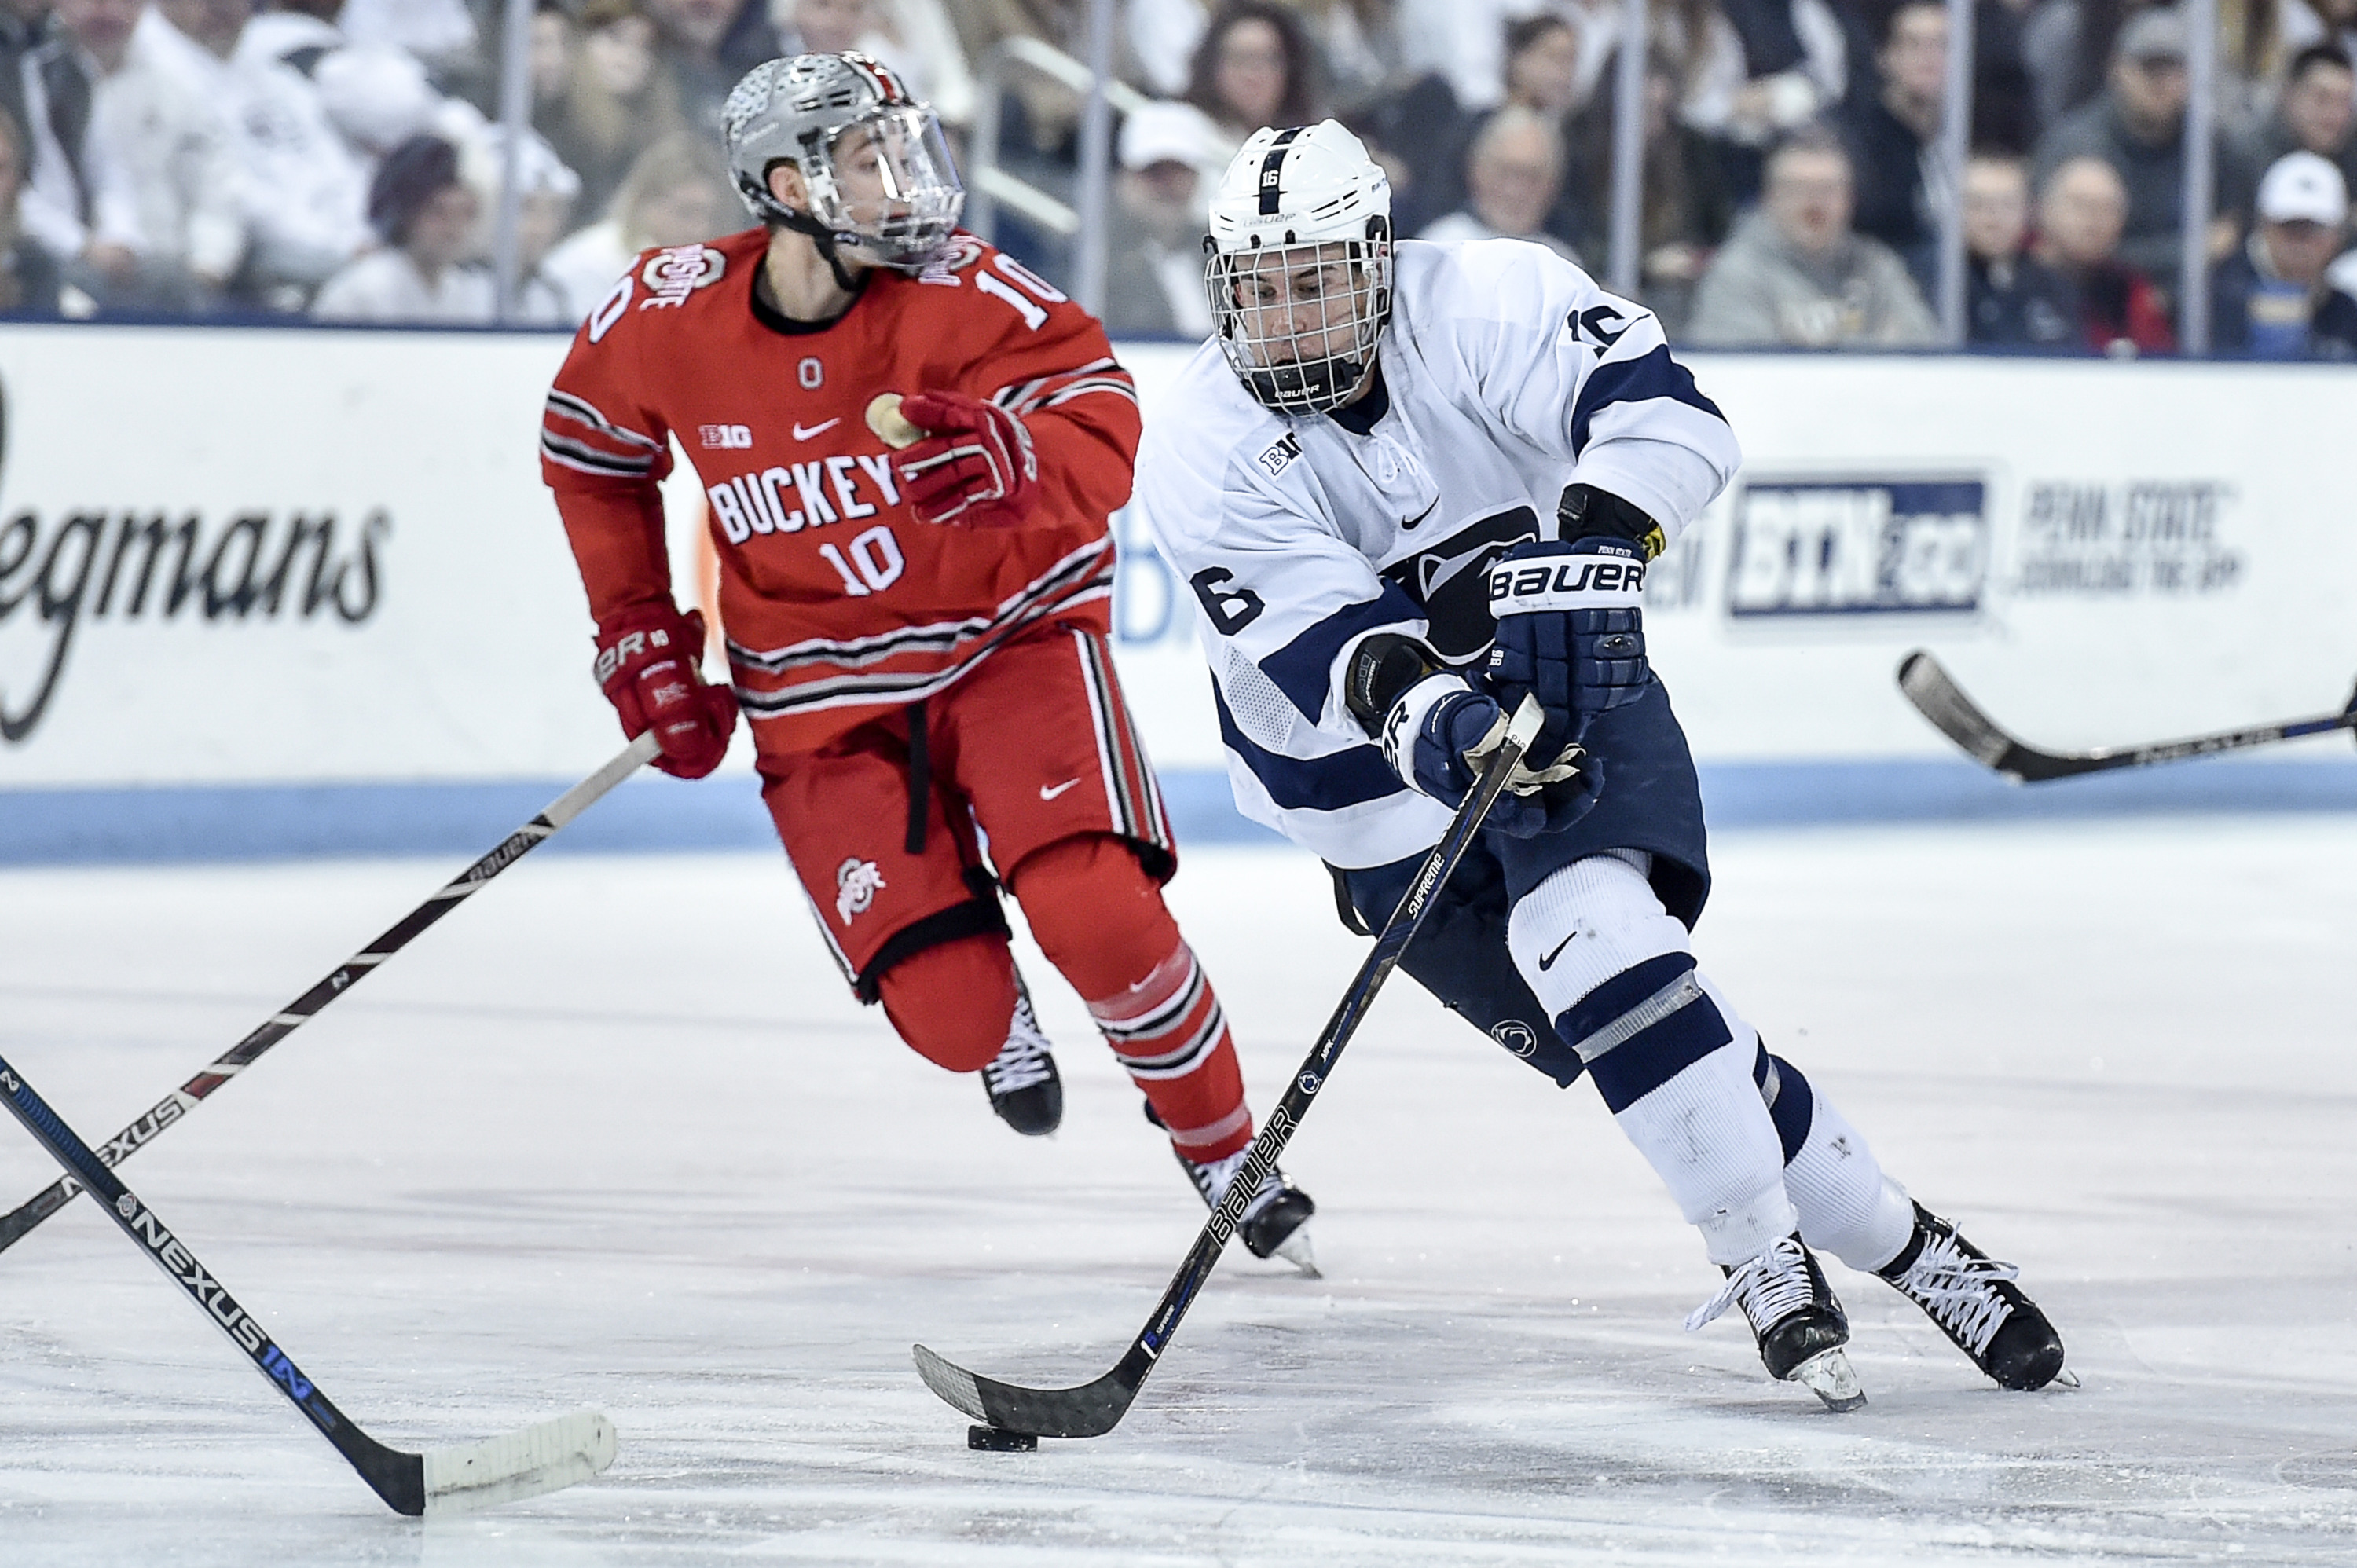 Kenmore East graduate Andrew Sturtz (16) was a standout at Penn State (Mark Selders/Penn State Athletics)